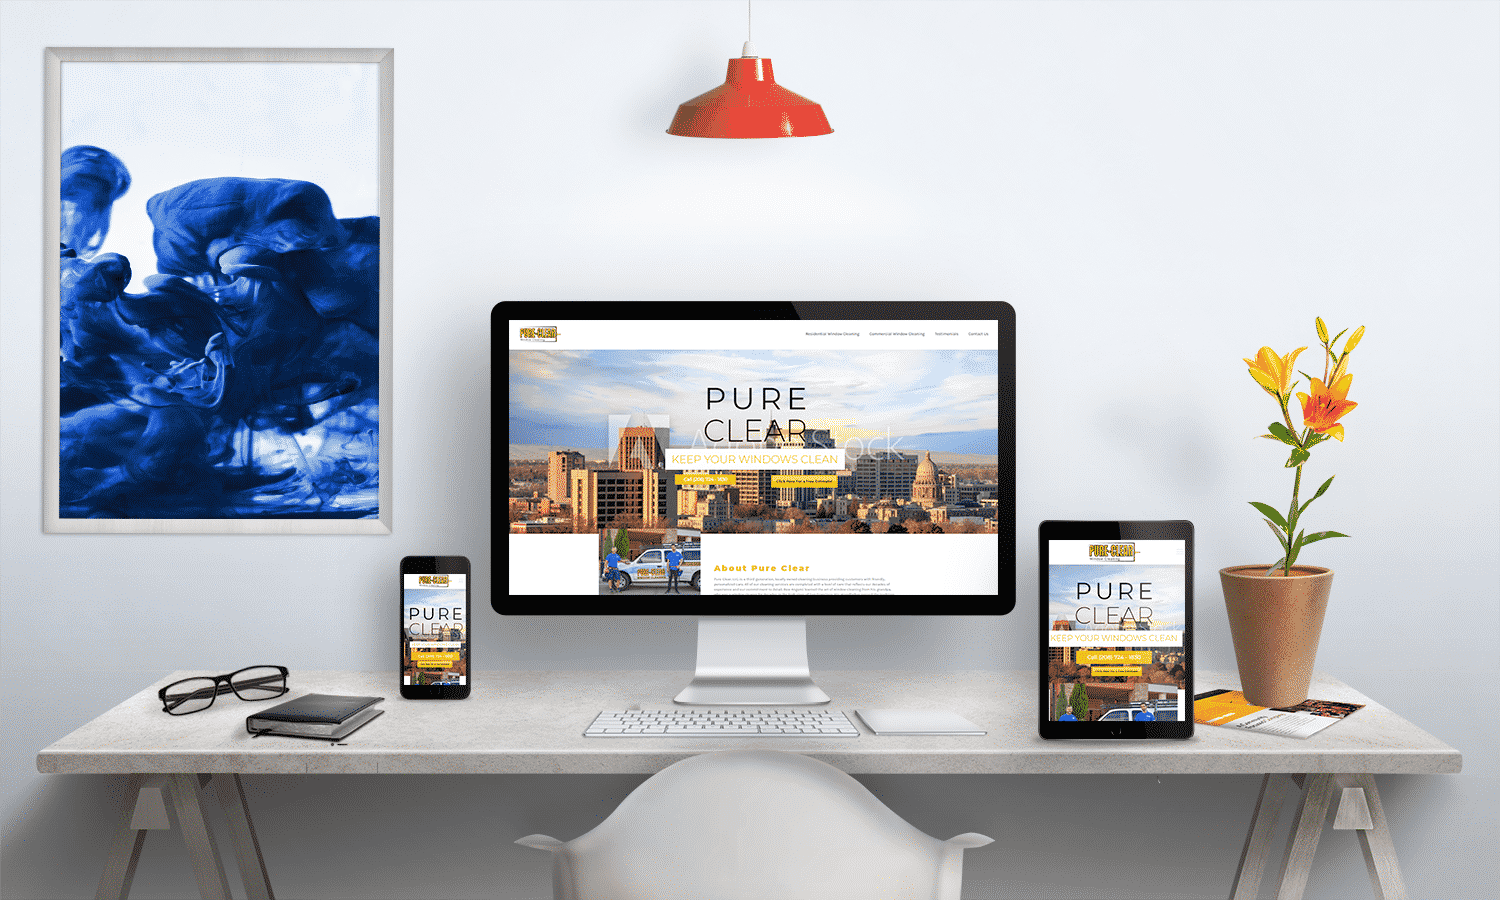 Pure Clear Window Cleaning Web Design